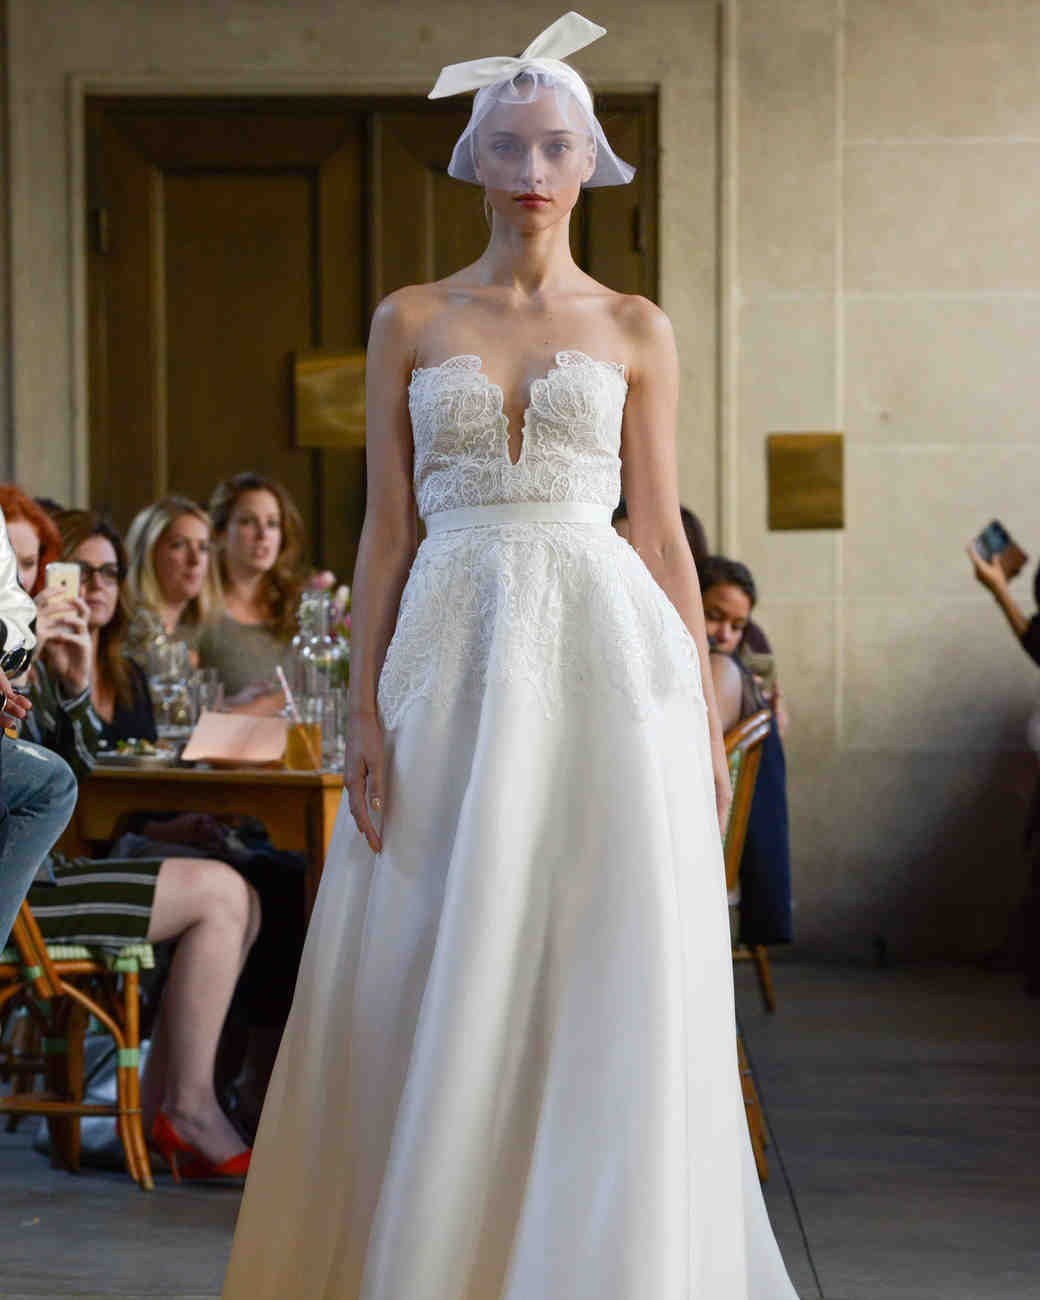 Lela Rose Wedding Dresses Nyc : Lela rose fall wedding dress collection martha